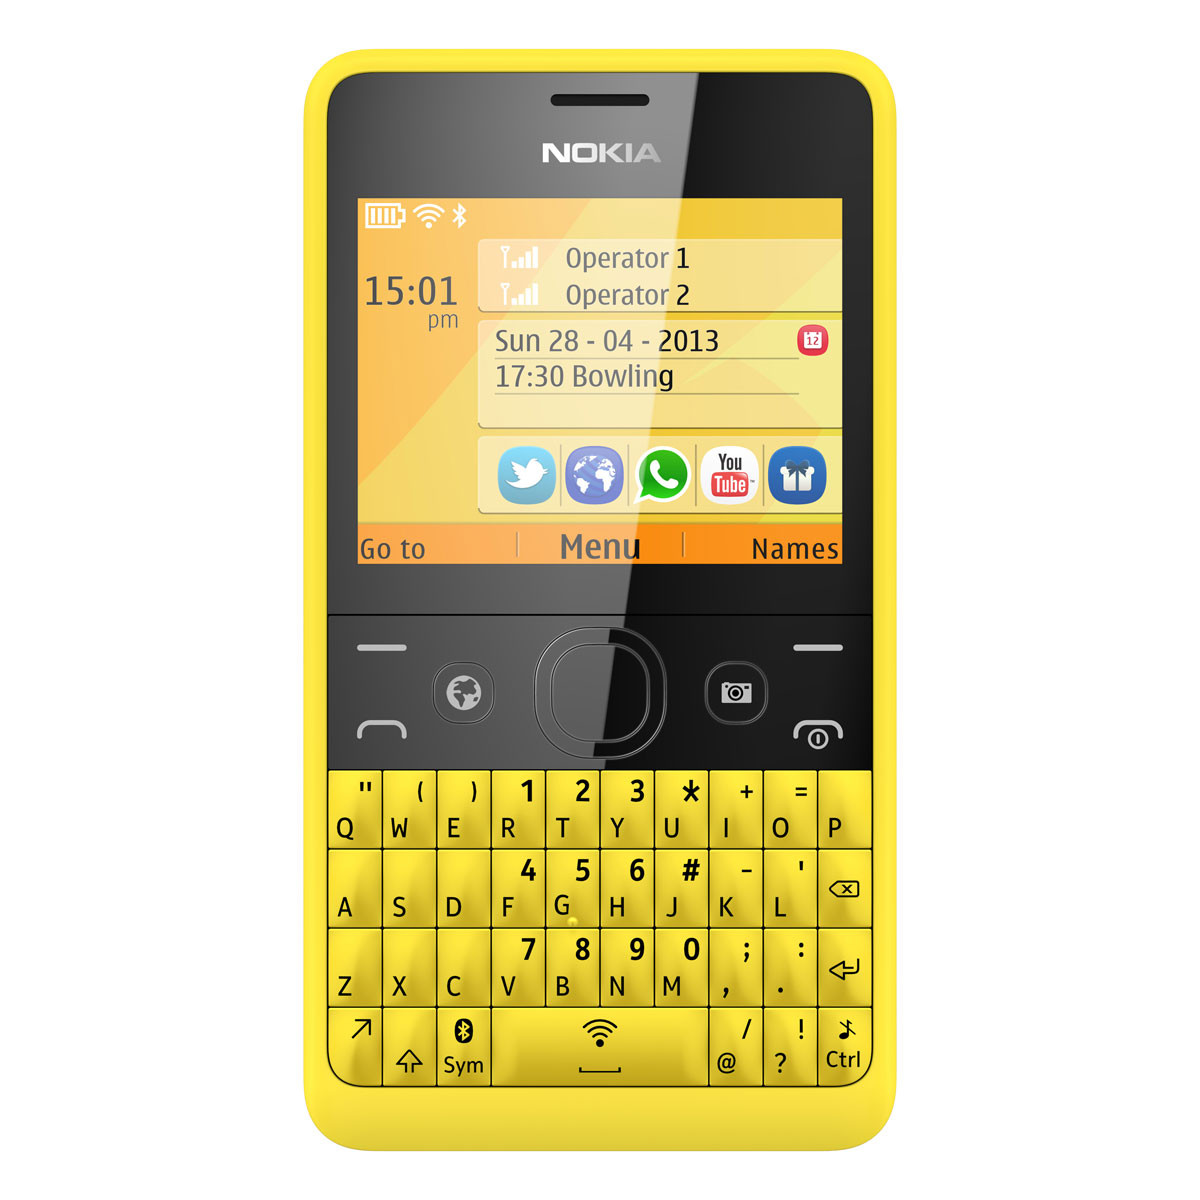 nokia asha 210 double sim jaune mobile smartphone nokia sur. Black Bedroom Furniture Sets. Home Design Ideas